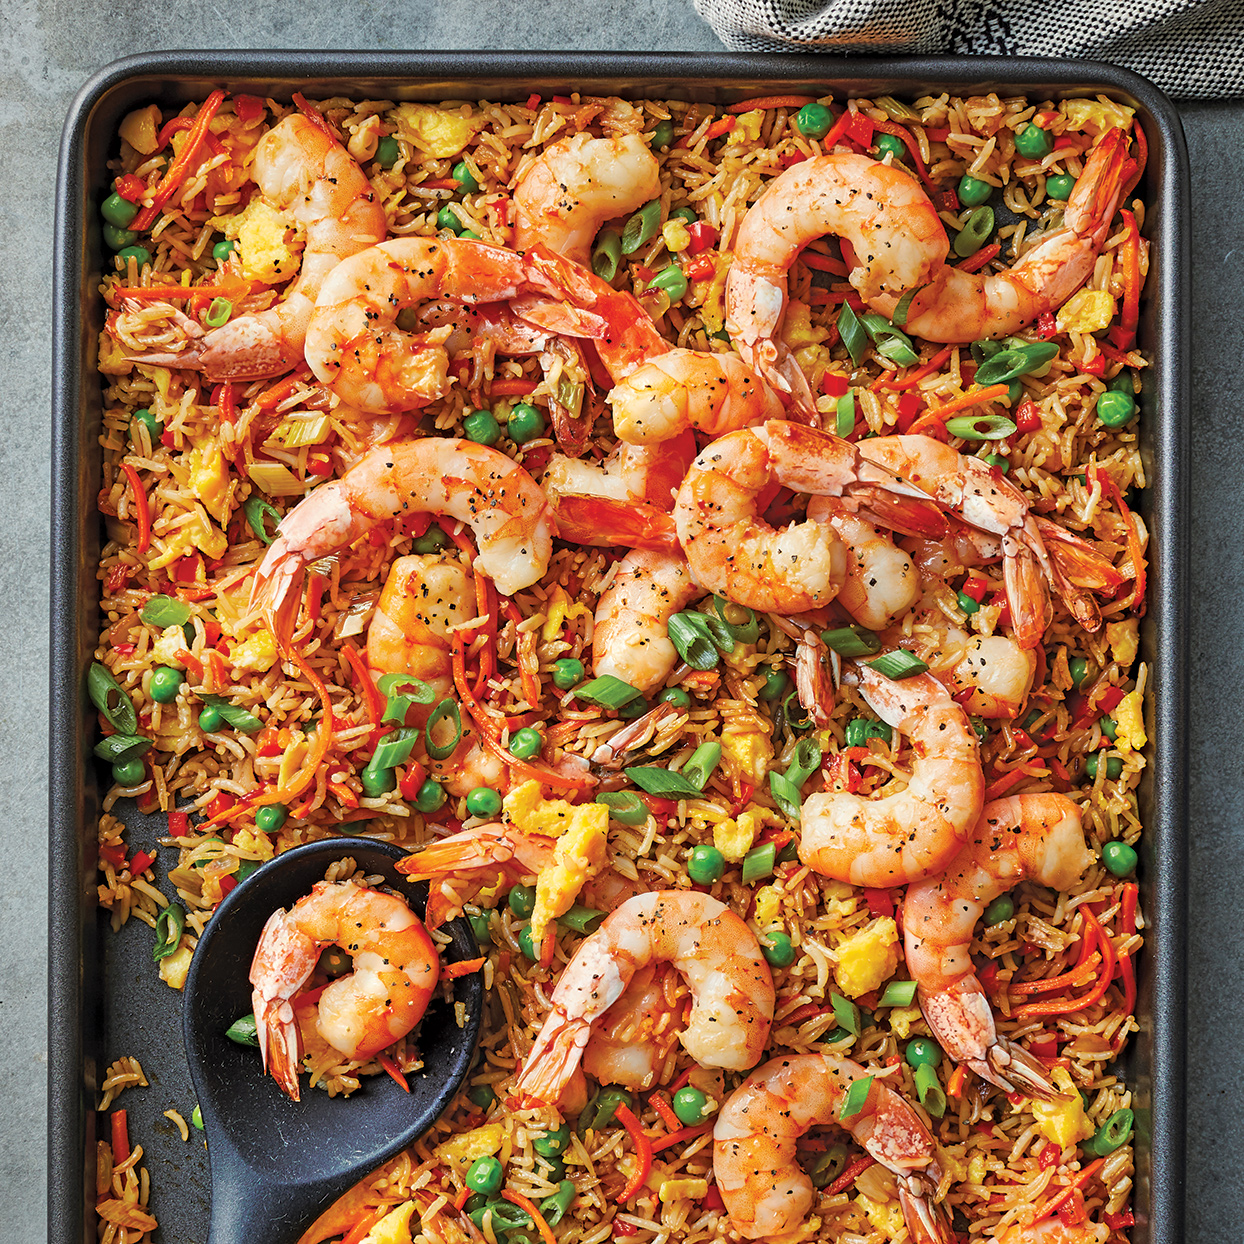 Classic shrimp fried rice gets amped-up flavor with sambal heat. The textures are pretty spot on with hits of crispy and tender rice and are the same as you'd get if you prepared it in a wok or skillet. This sheet-pan shrimp fried rice recipe is a great way to use leftover rice, but you could also use pre-cooked microwave rice so that it can be coming to room temperature while you chop the veggies. Source: 400 Calorie Recipes